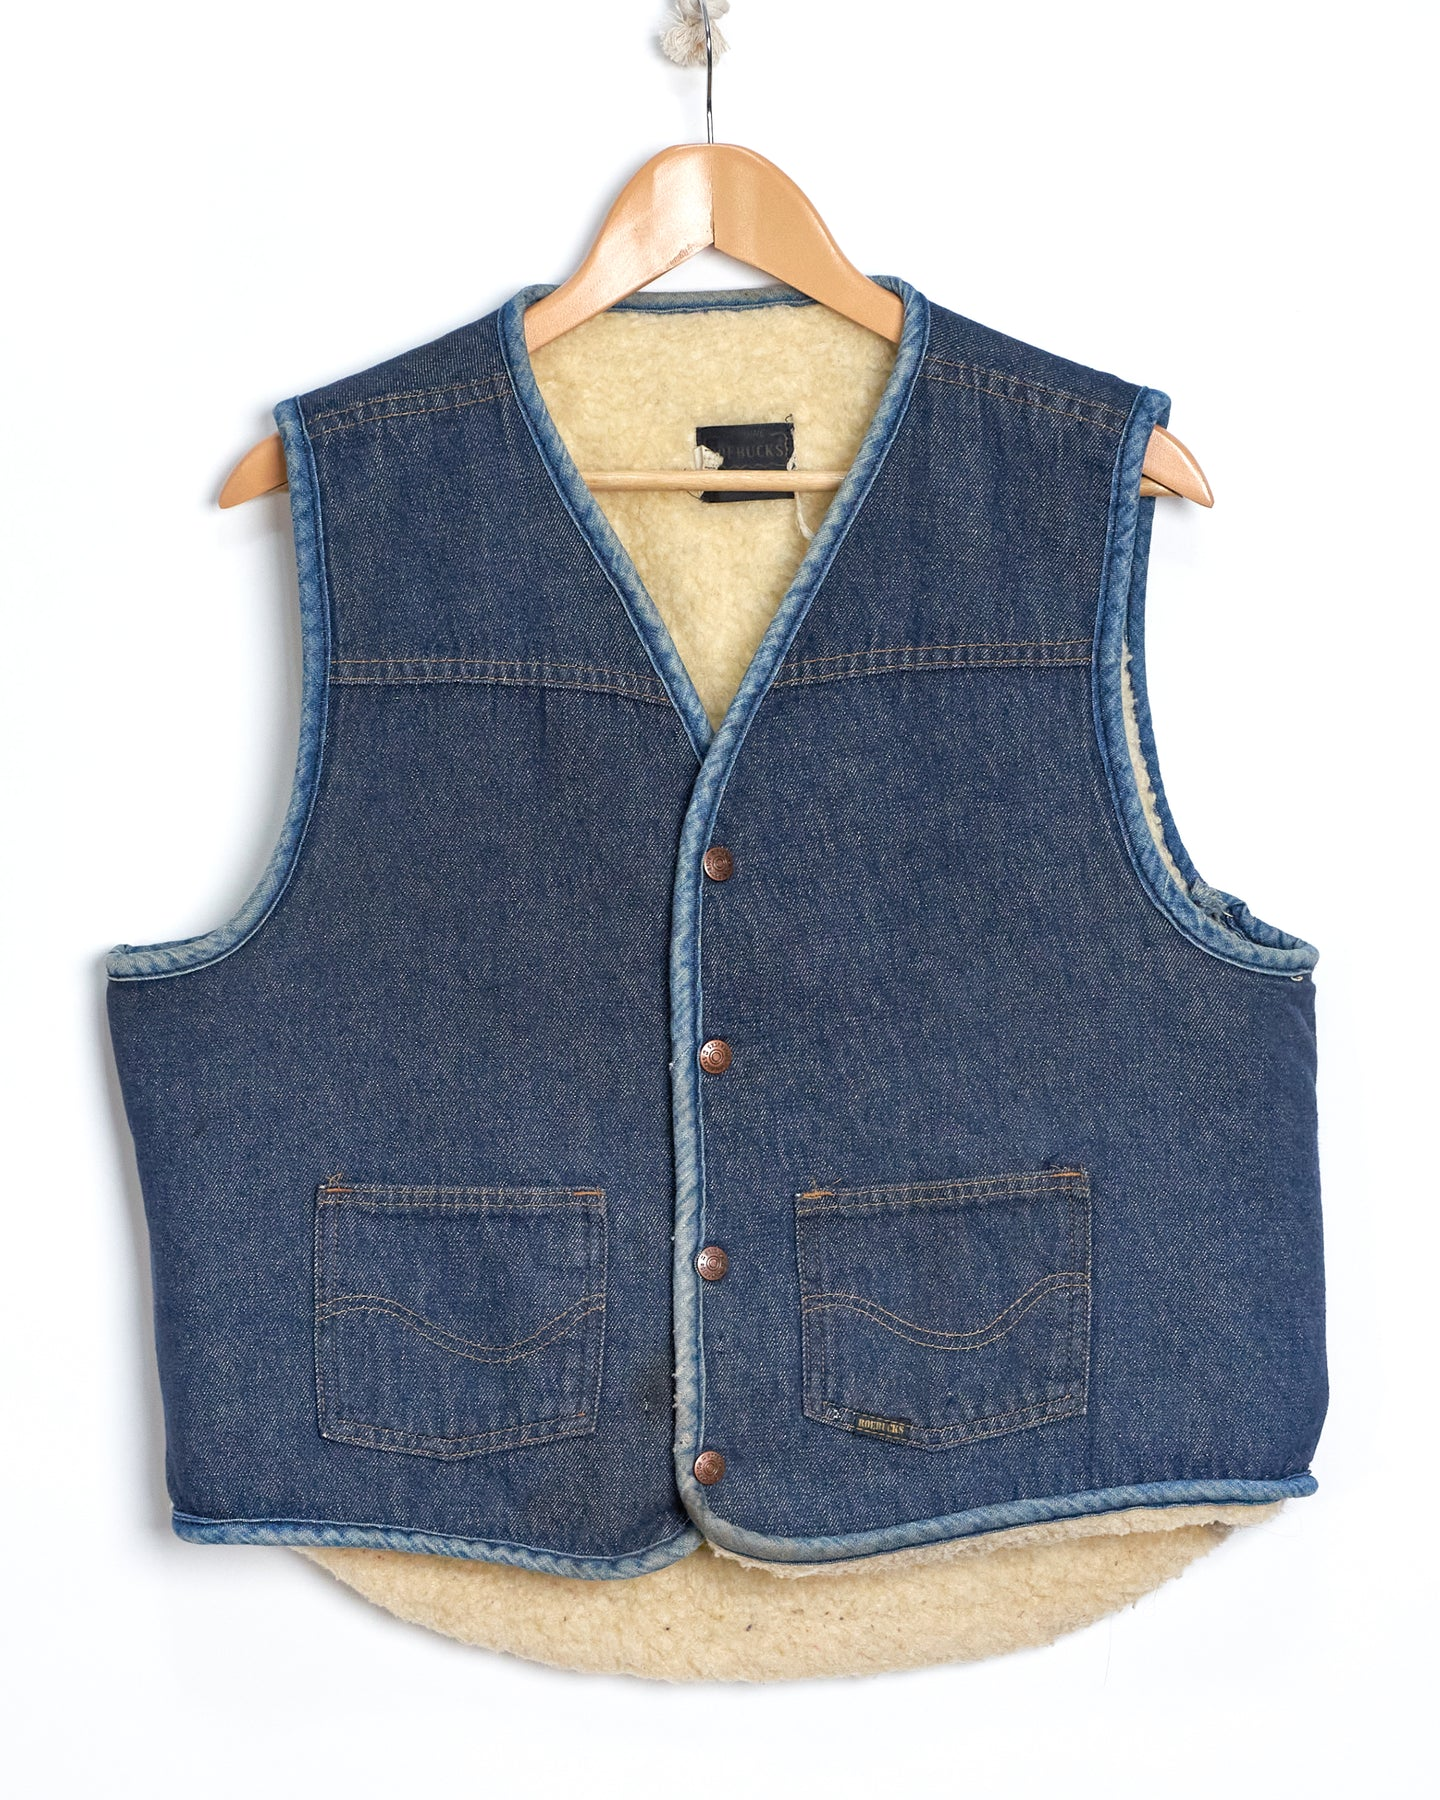 Two Toned Sears Denim Vest